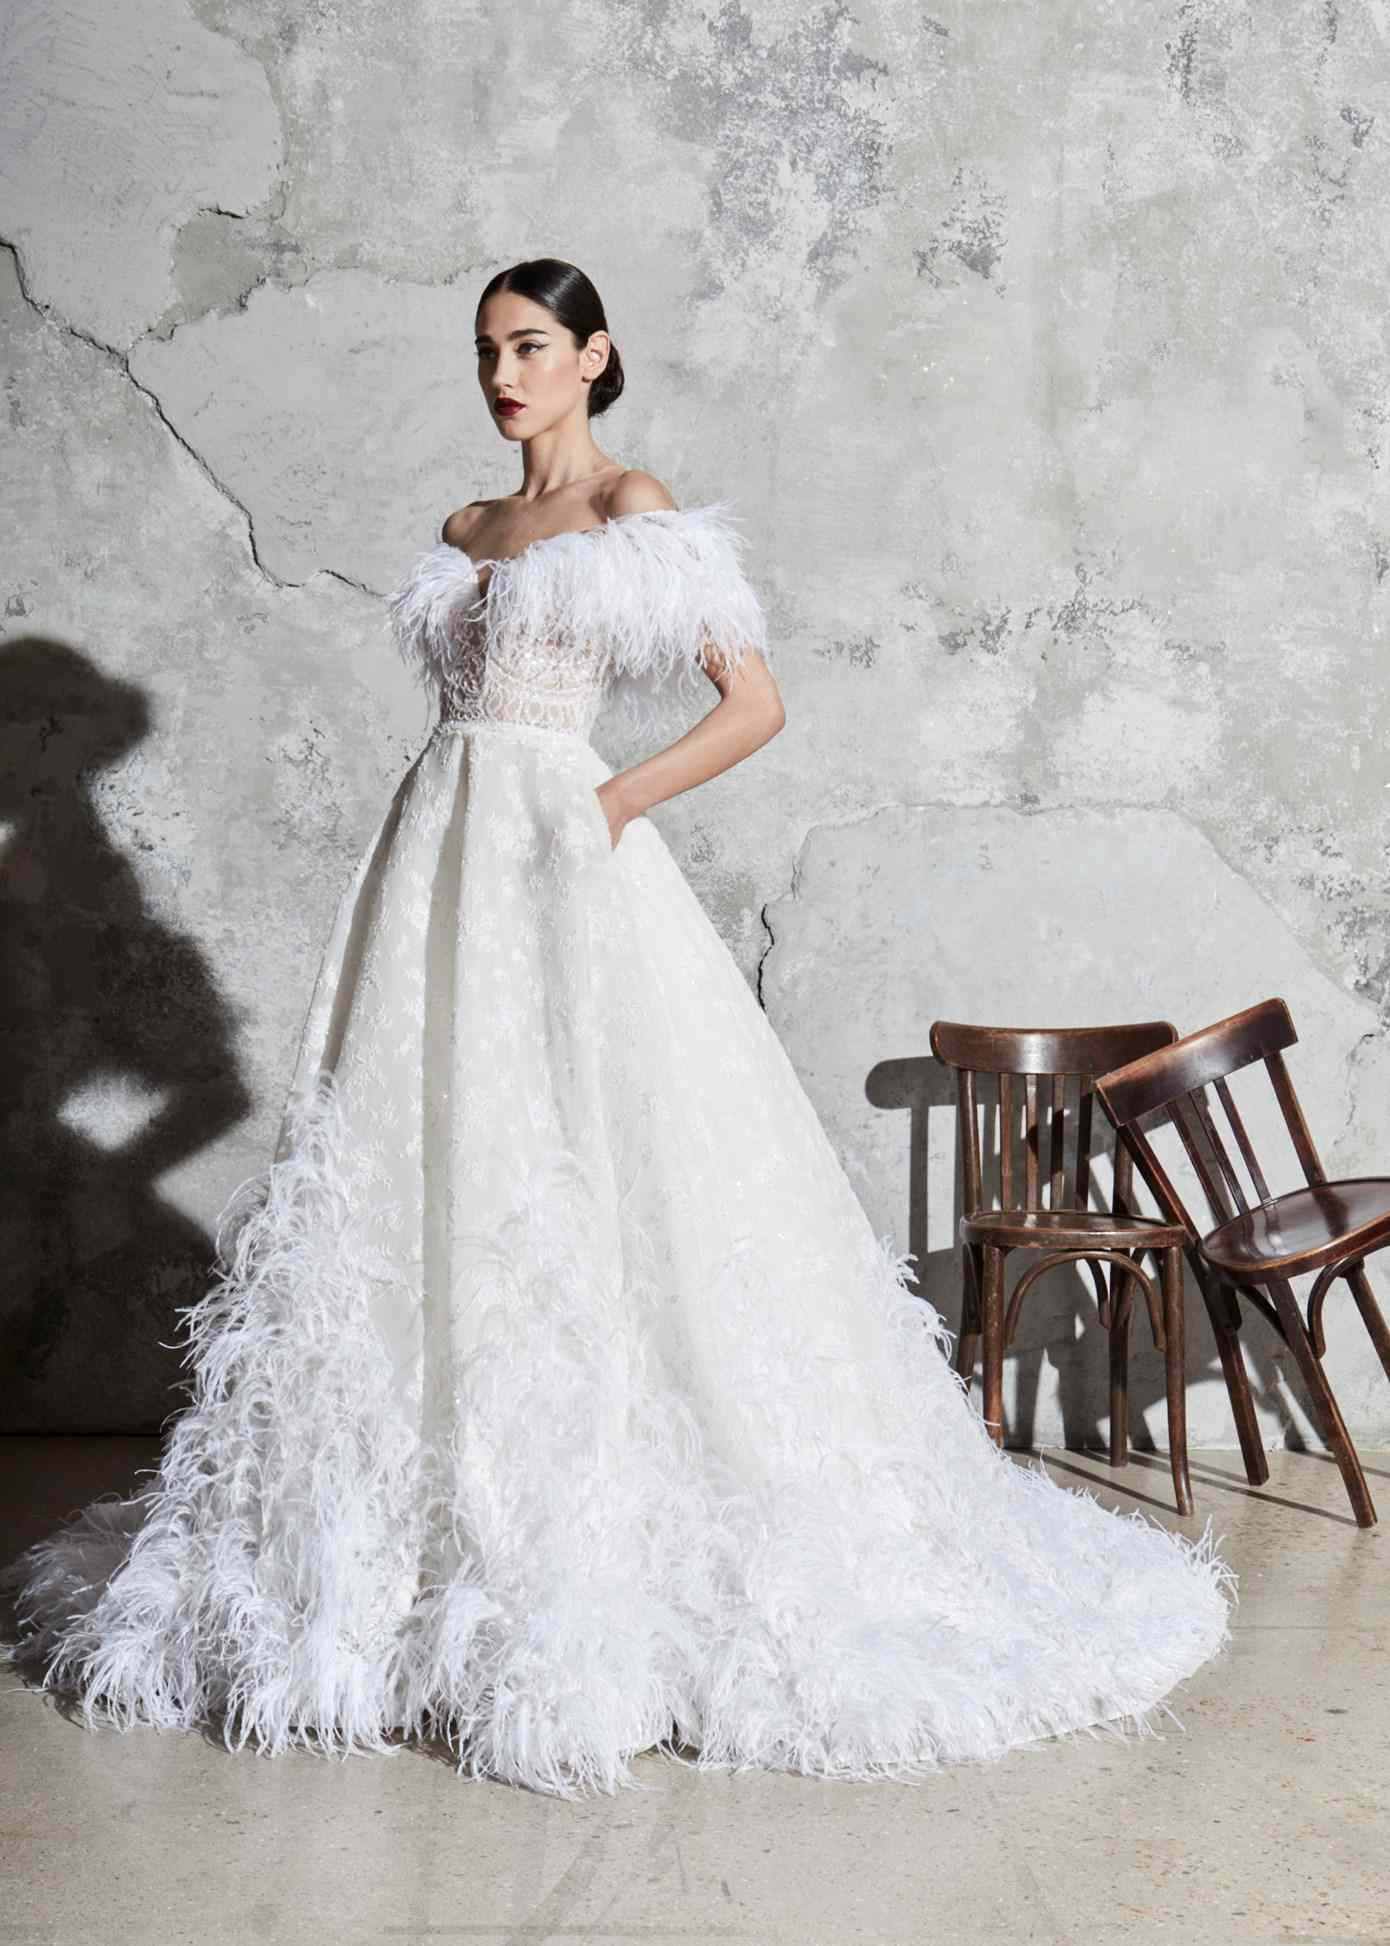 Model in off-the-shoulder ballgown with ostrich feather detail on the neckline, an embroidered bodice, and a floral skirt with ostrich feather detail on the hemline